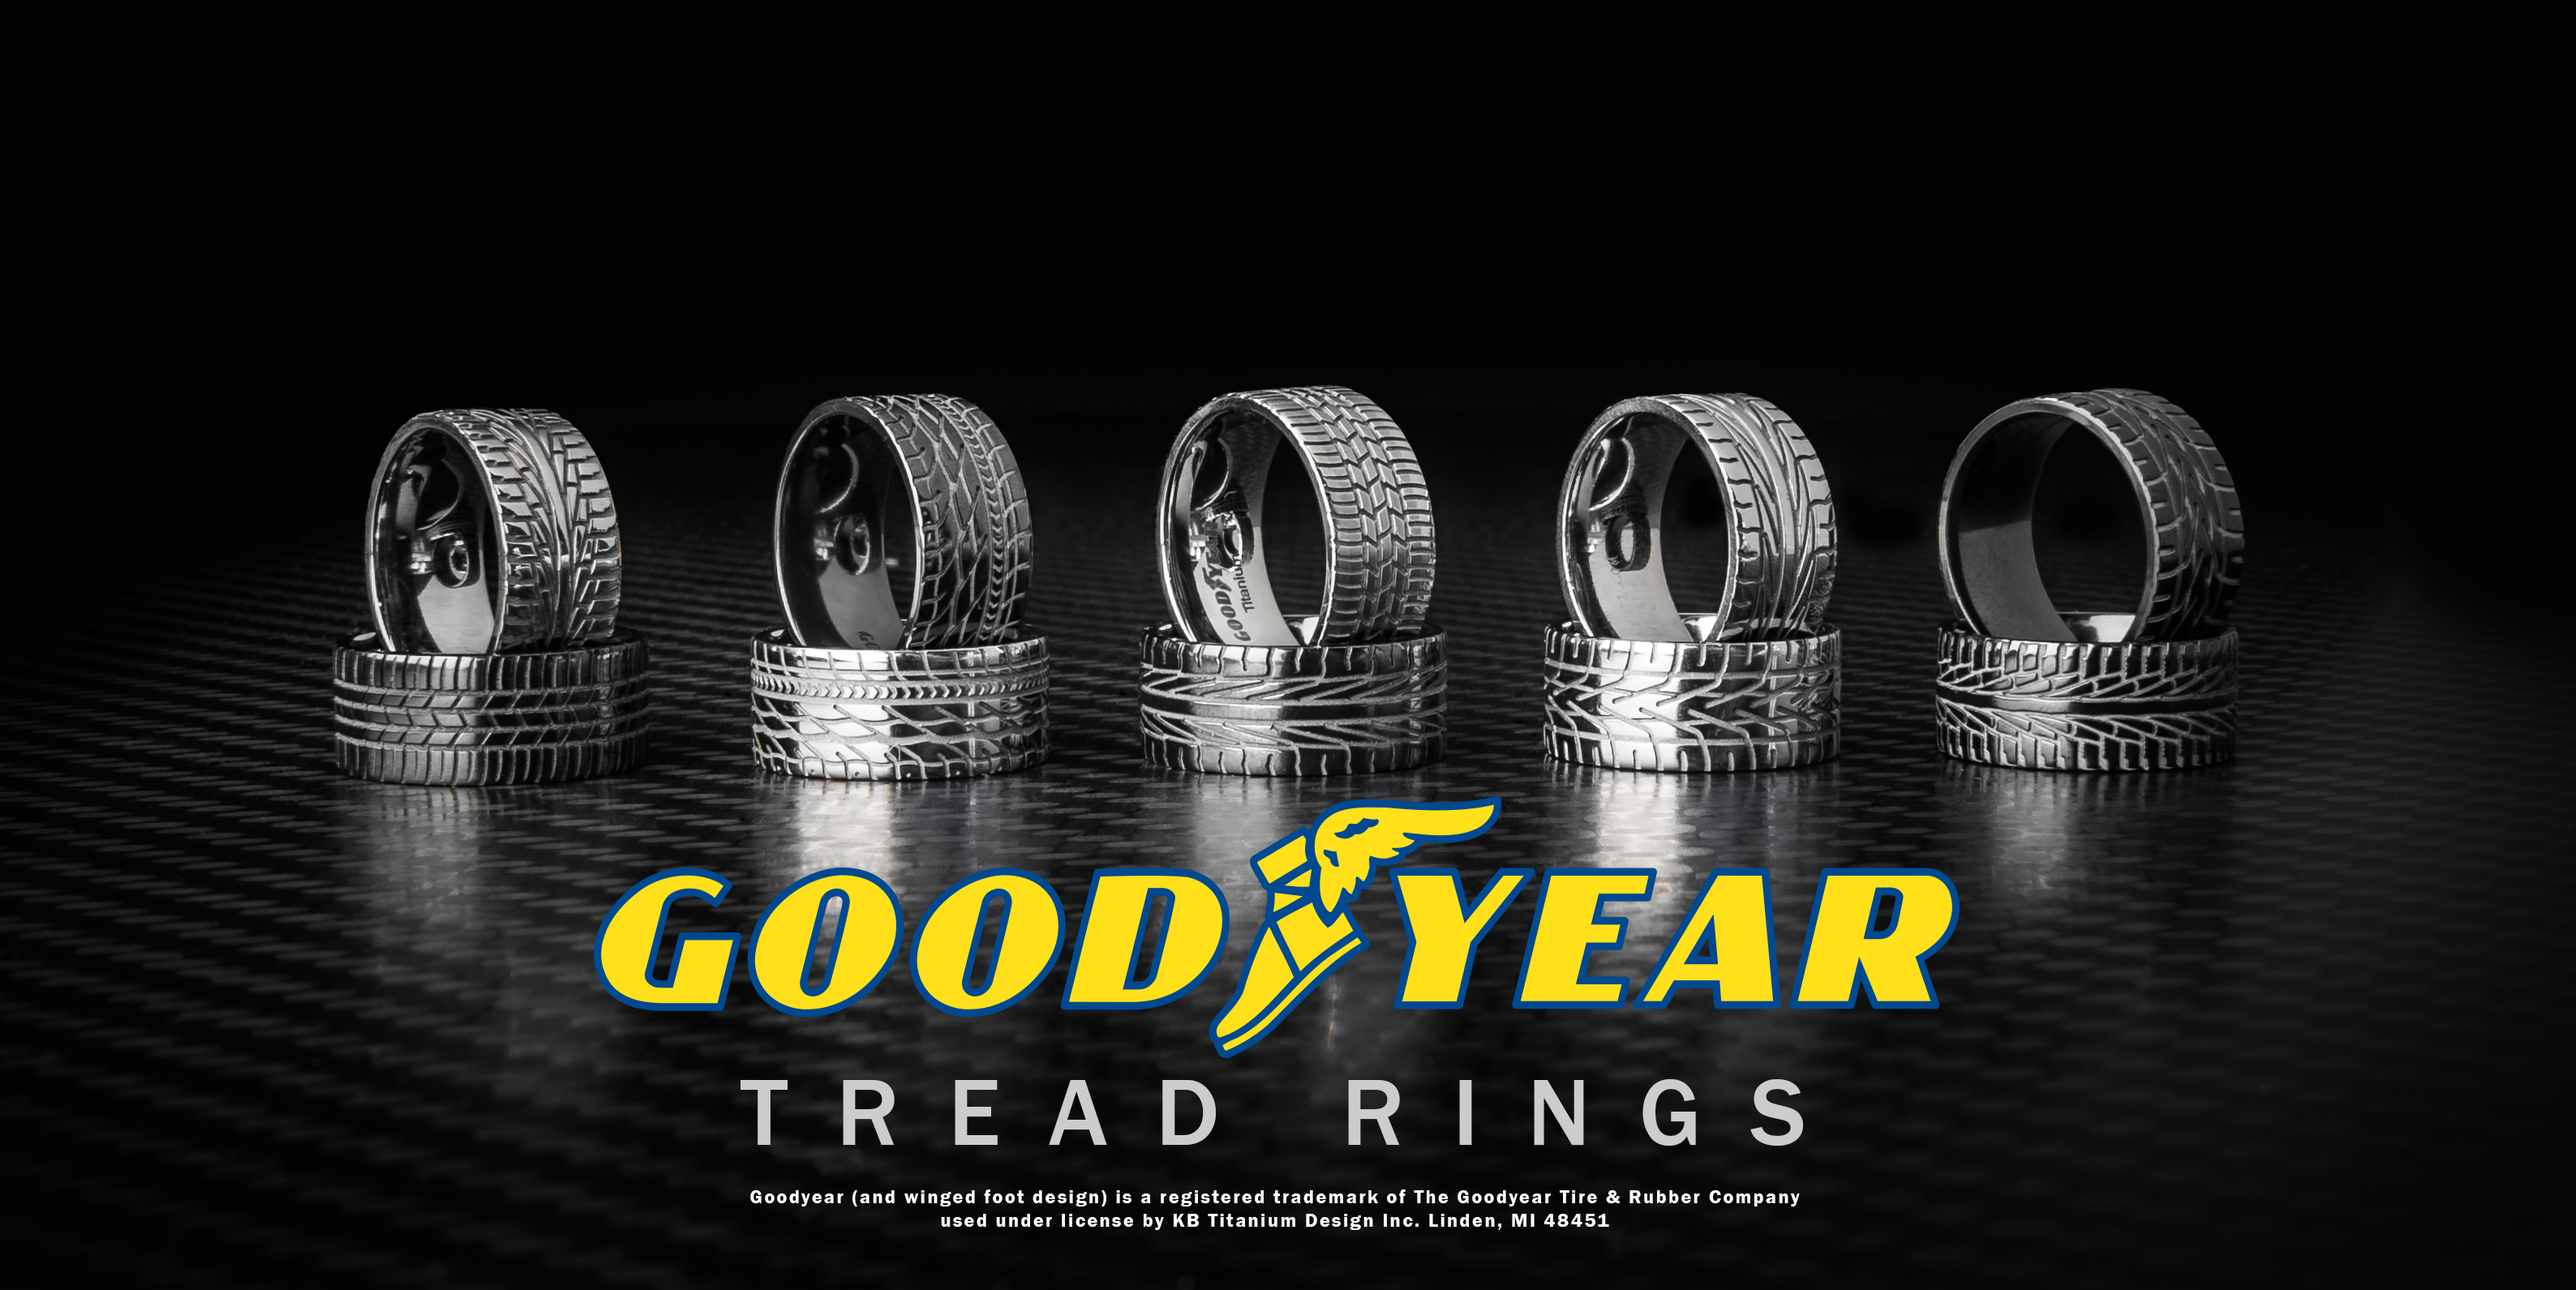 goodyear rings mud tire wedding ring Show Off Your Love of Motorsports